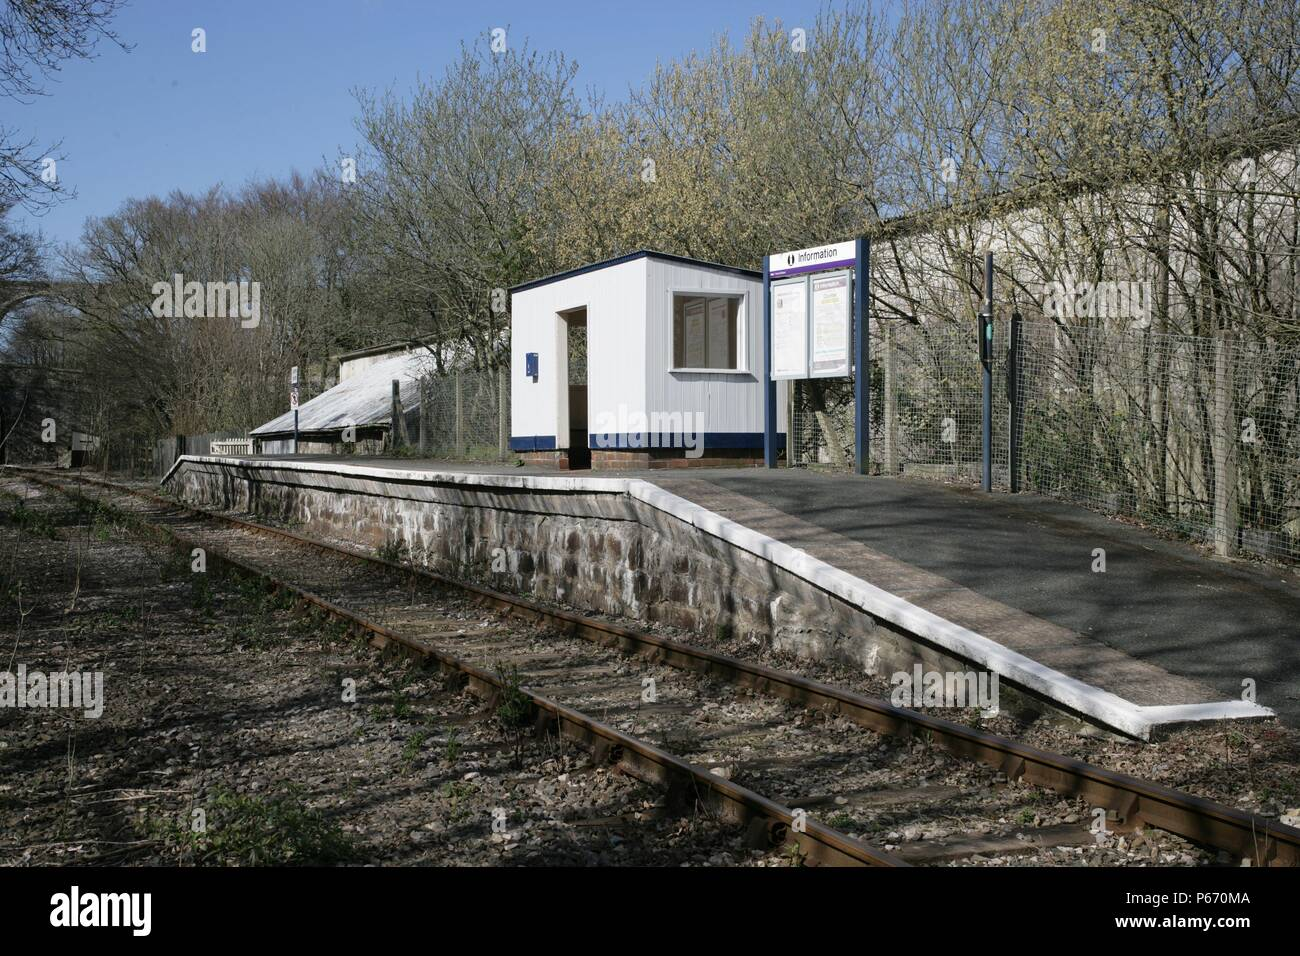 The platform, waiting shelter and traveller information board at Coobe on the Liskeard to Looe branch line, Cornwall. 2006 - Stock Image